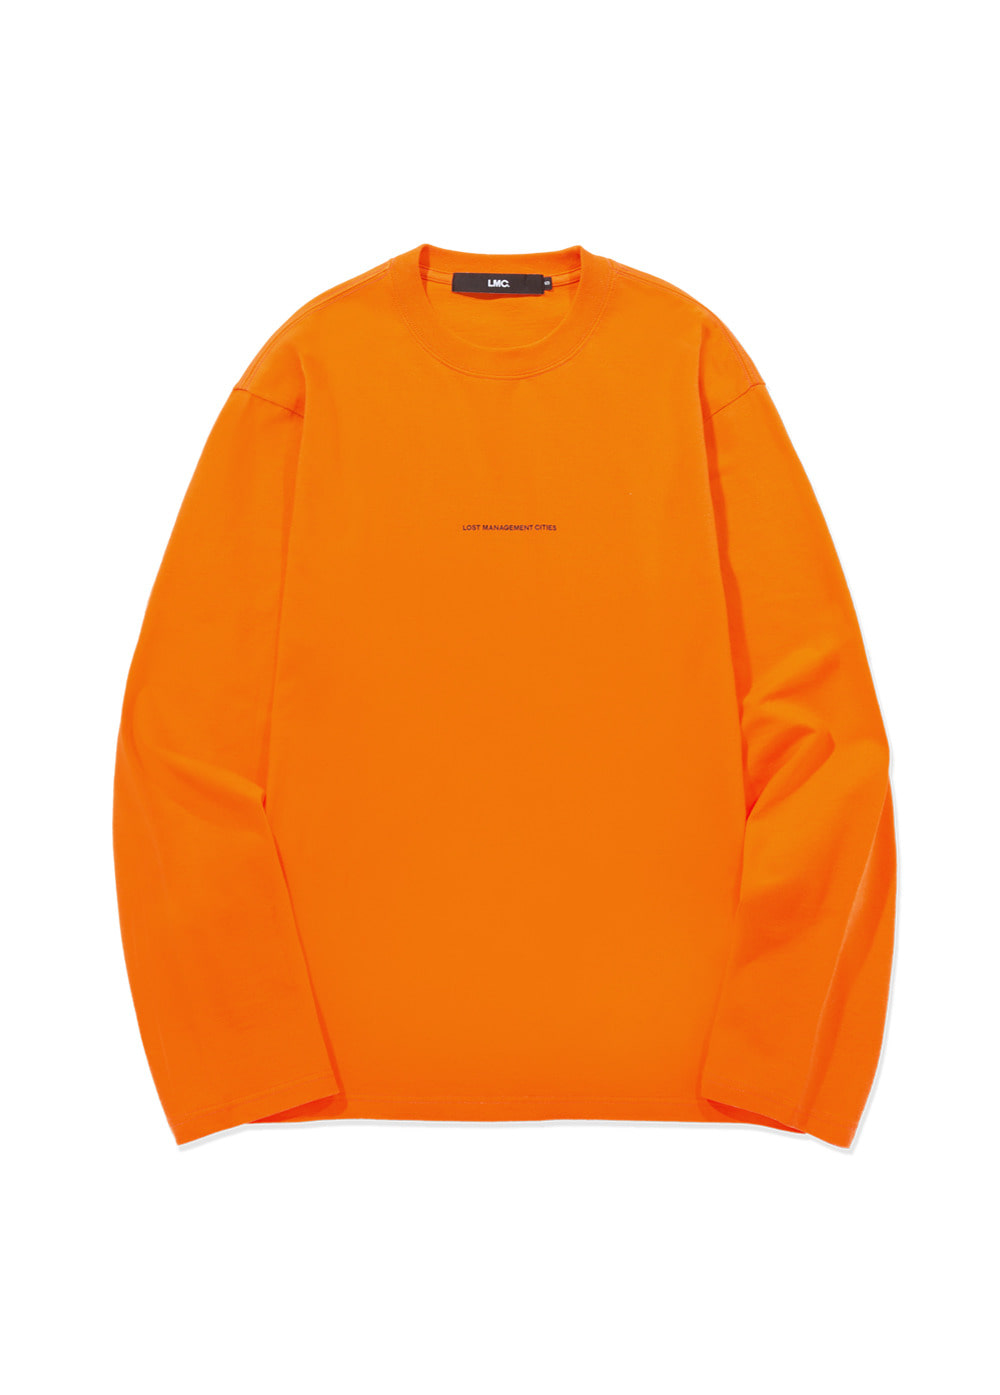 LMC MICRO FN LONG SLV TEE orange